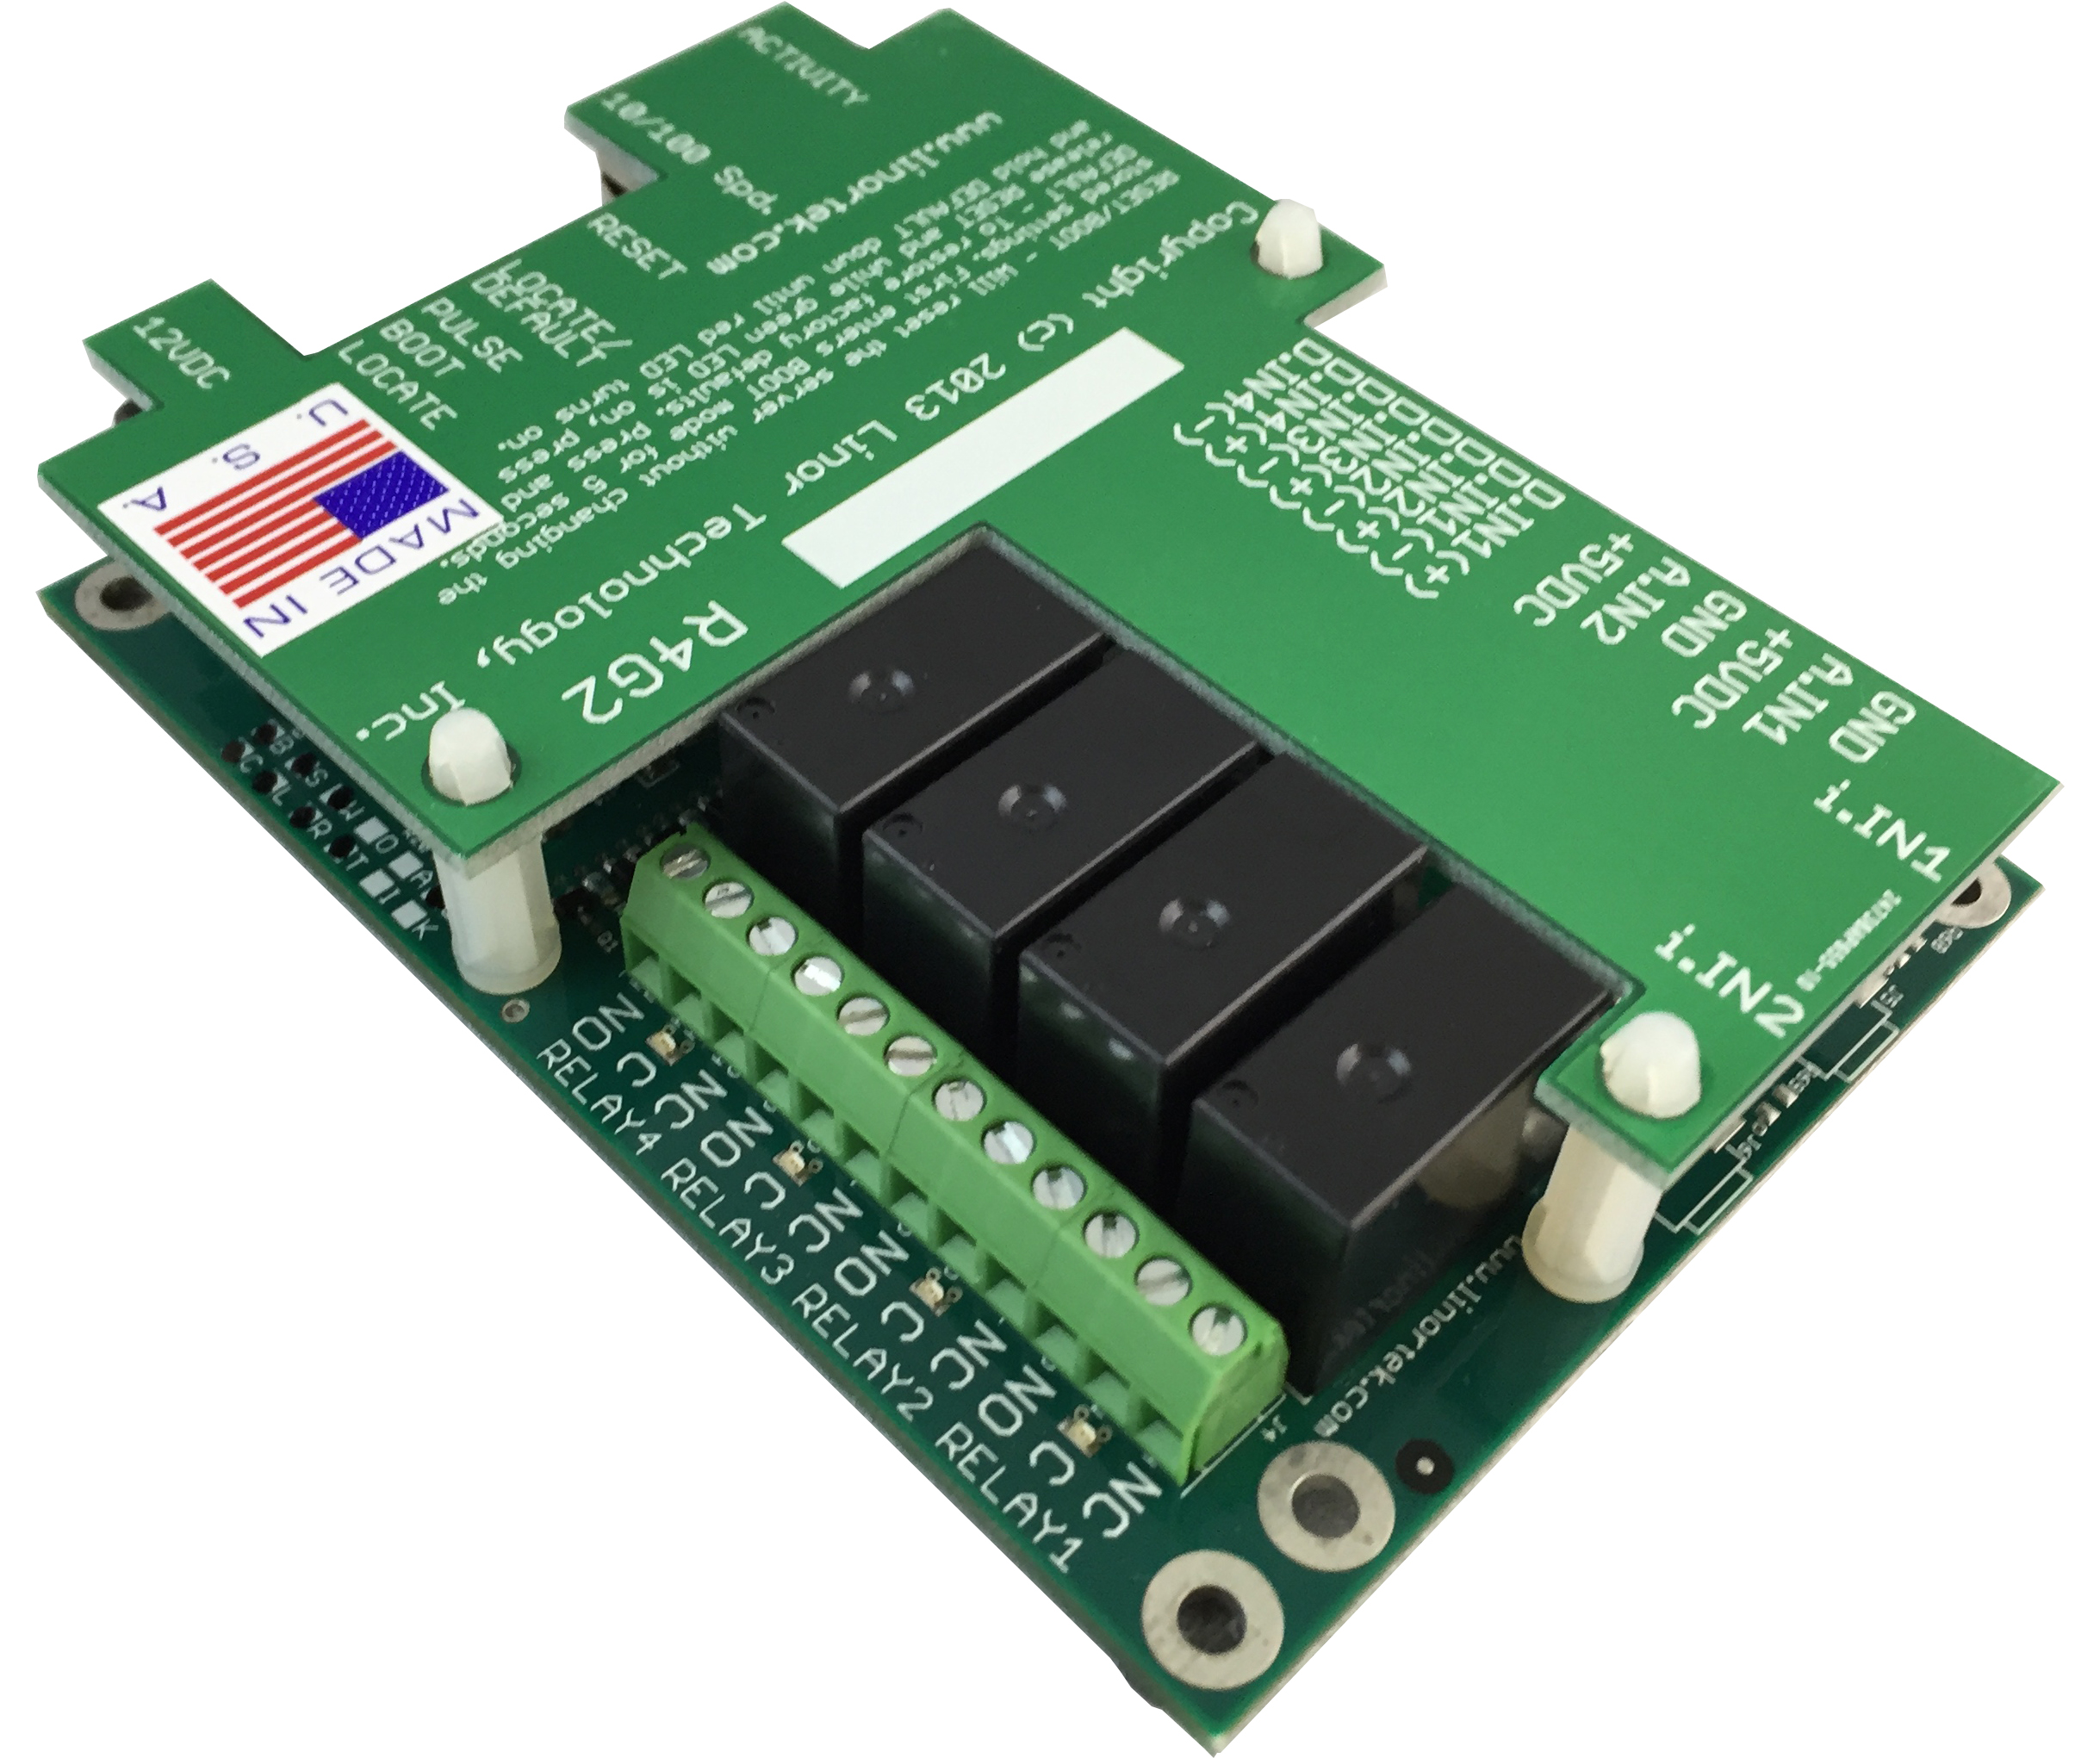 FARGO G2R4DI Web Based TCP/IP Ethernet Relay Board 4 Relay Outputs, 4 Digital Inputs